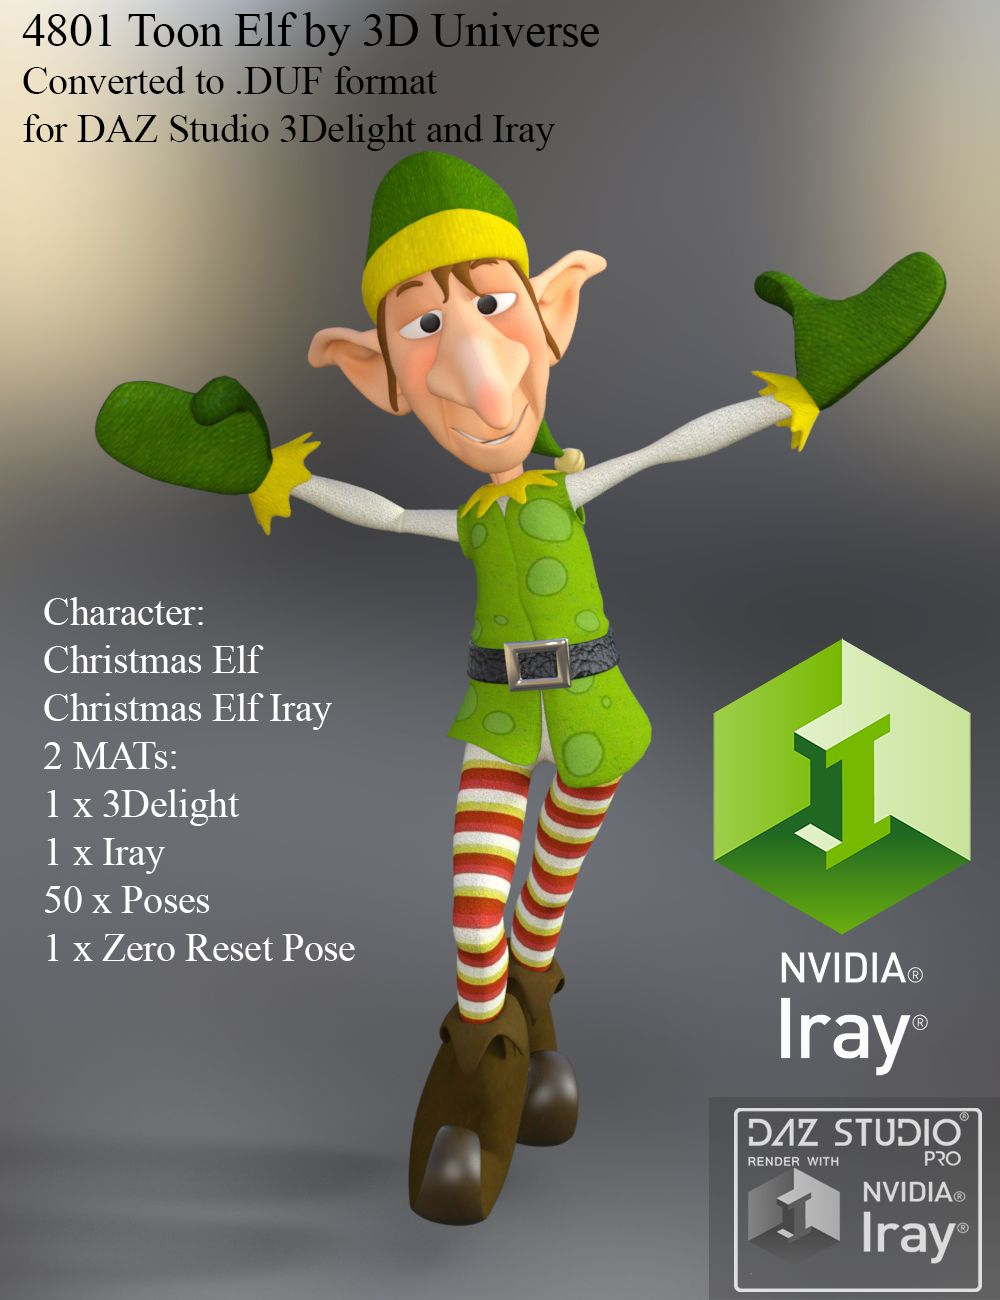 Toon Elf converted and updated to Iray for DAZ Studio 4.9